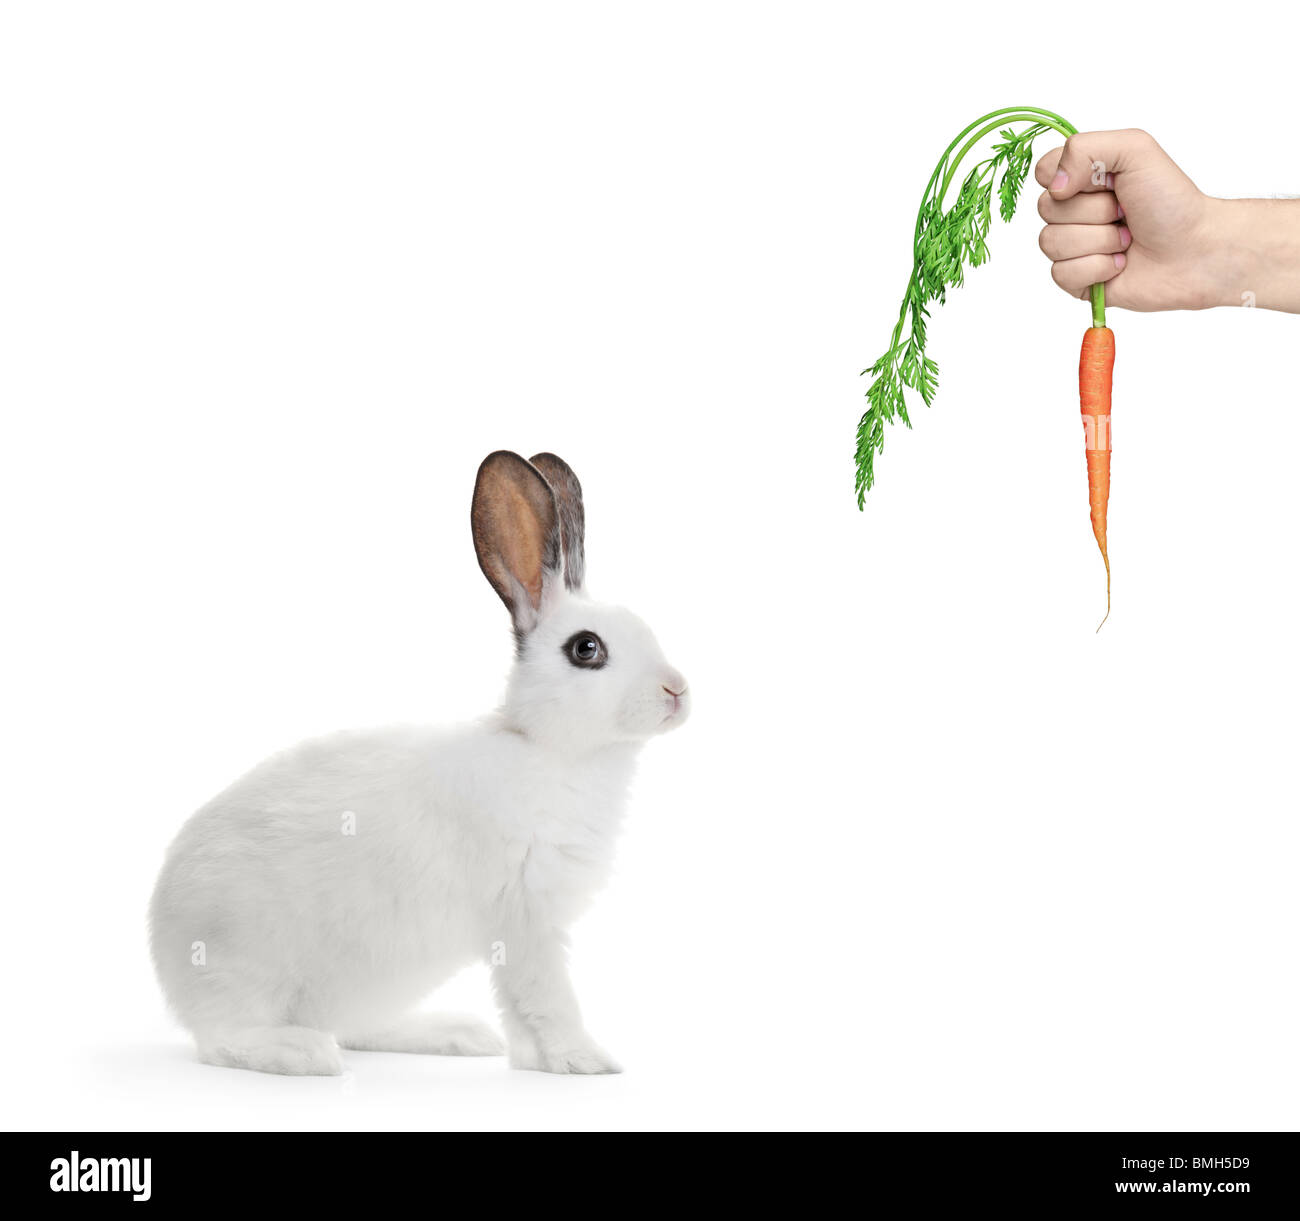 A white rabbit and a hand holding a carrot - Stock Image